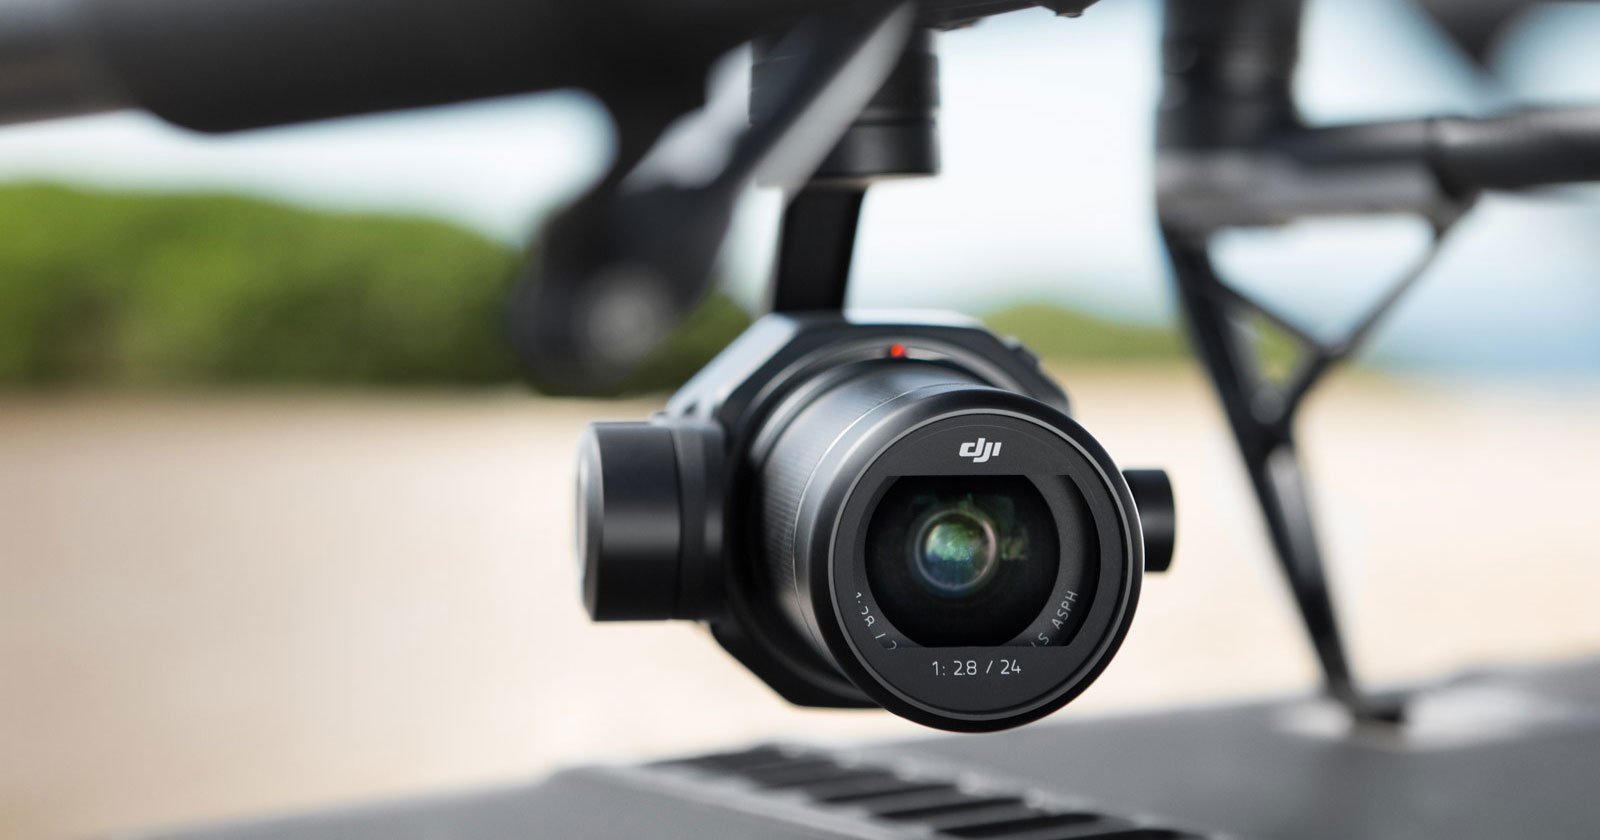 Dji Zenmuse X7 The First Super 35mm Camera For Aerial